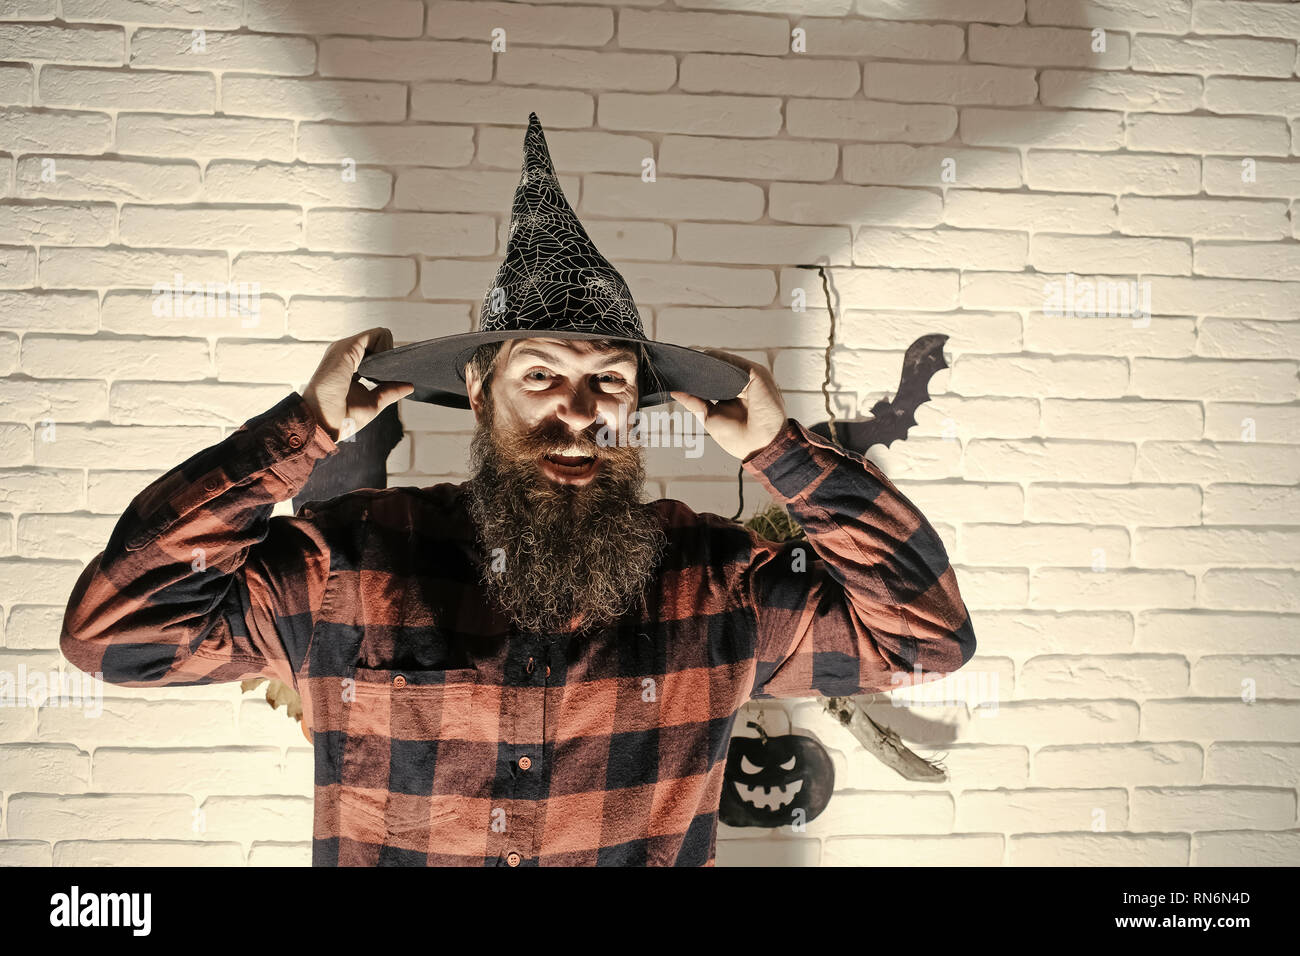 9418f8c704096 Halloween hipster with beard on evil face and witch hat Stock Photo ...